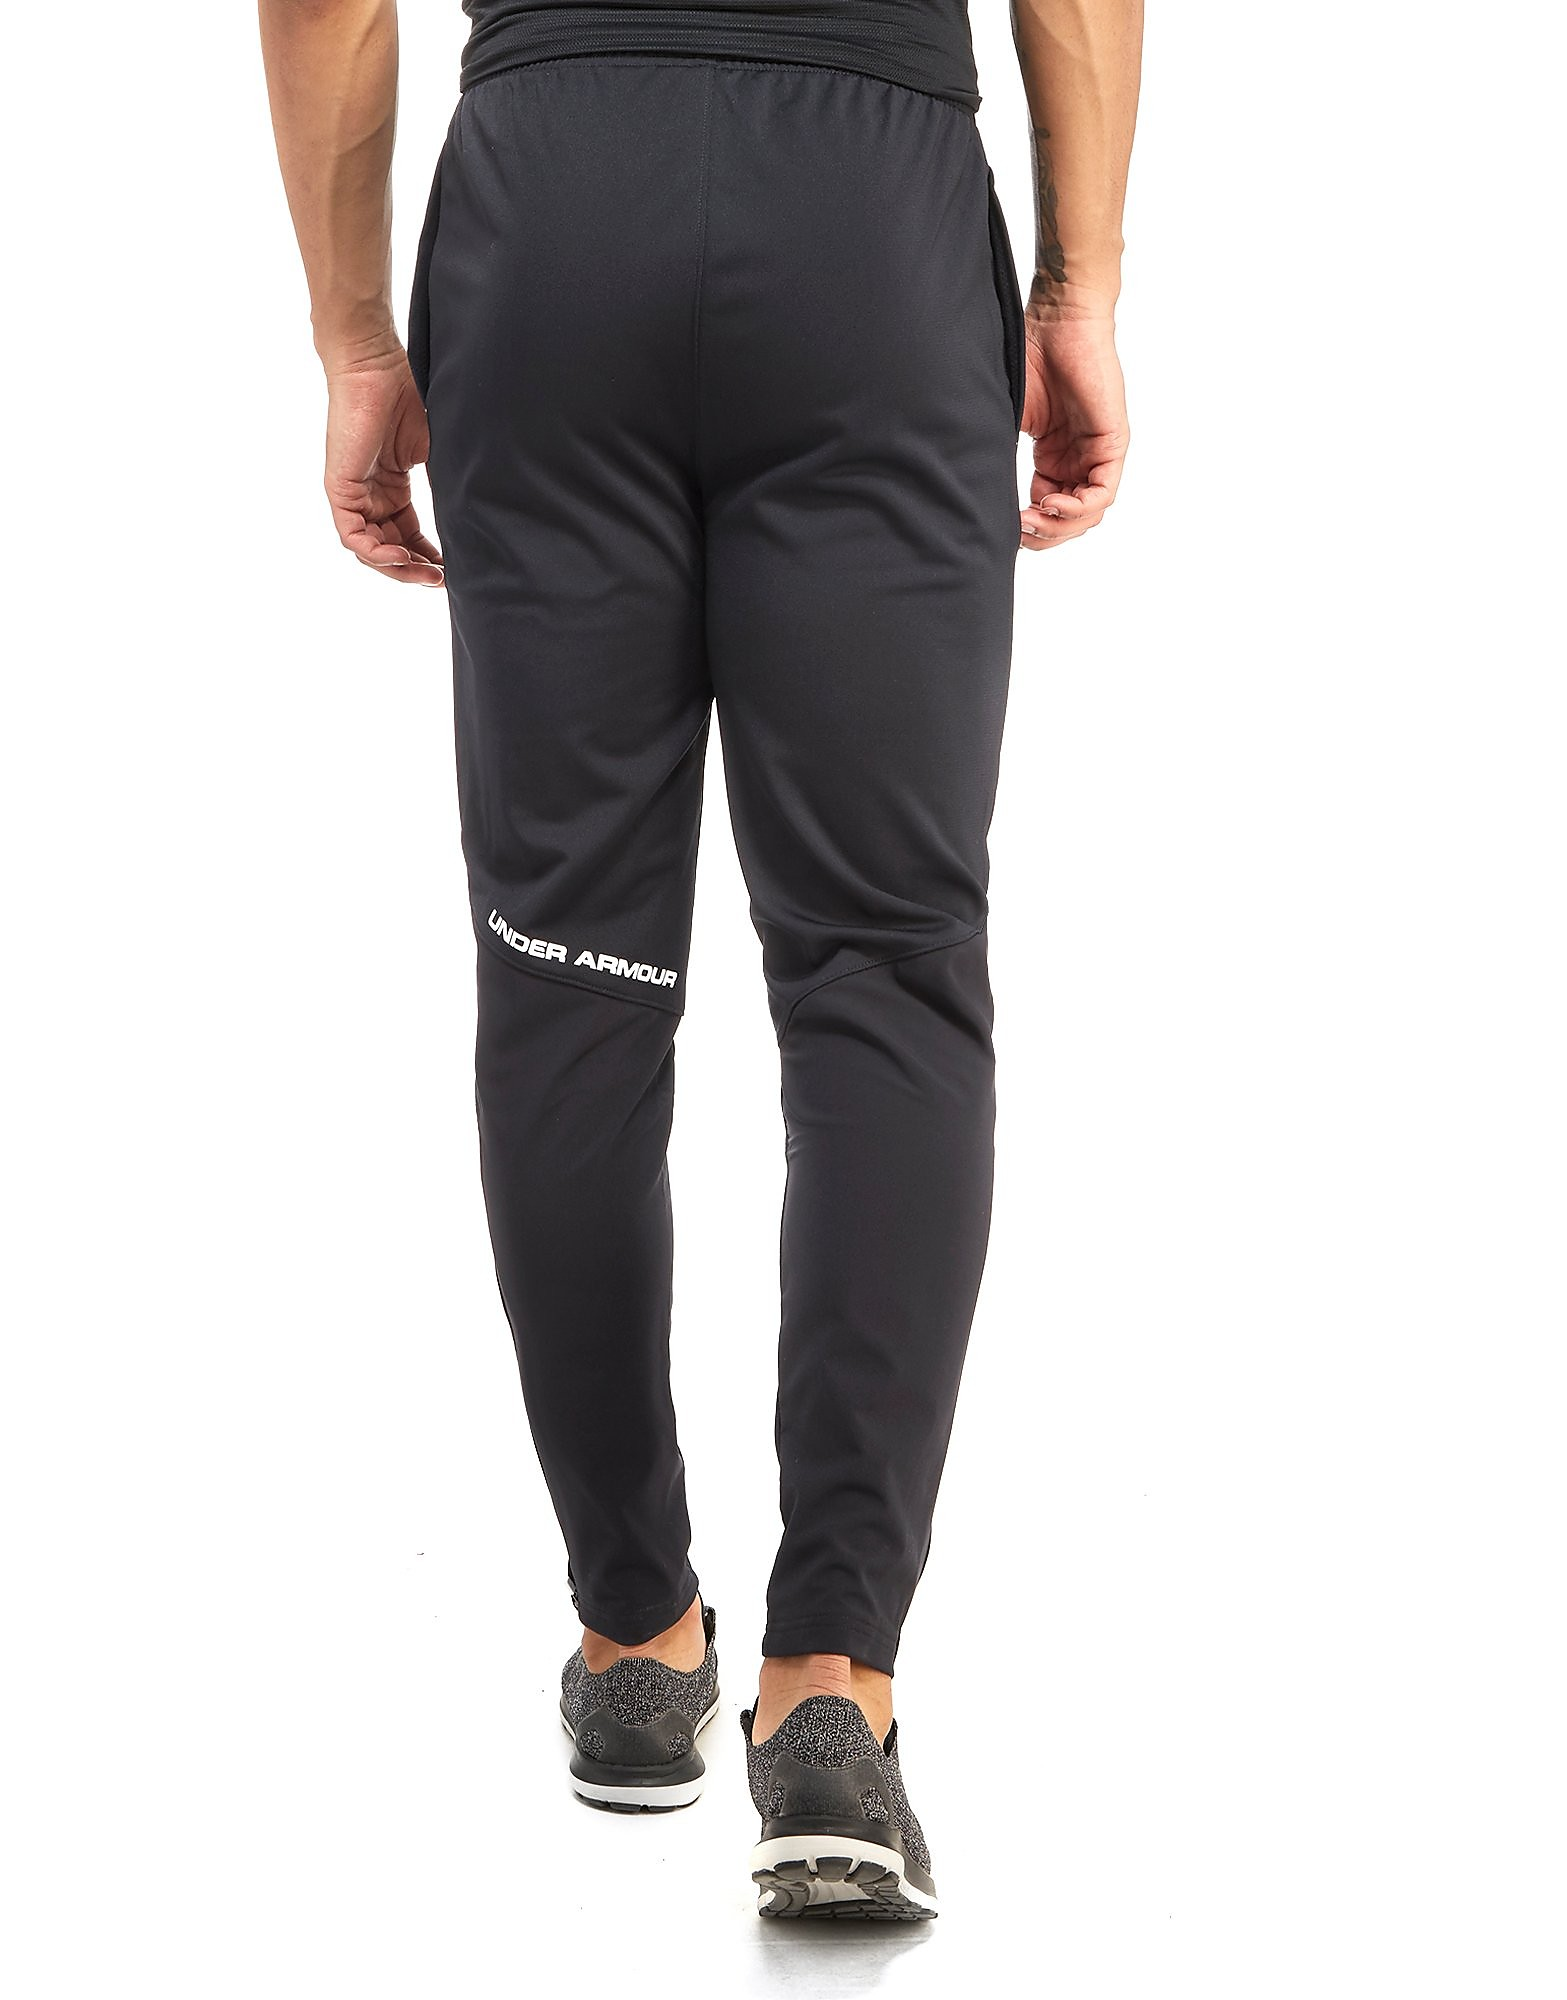 Under Armour Challenger Pants